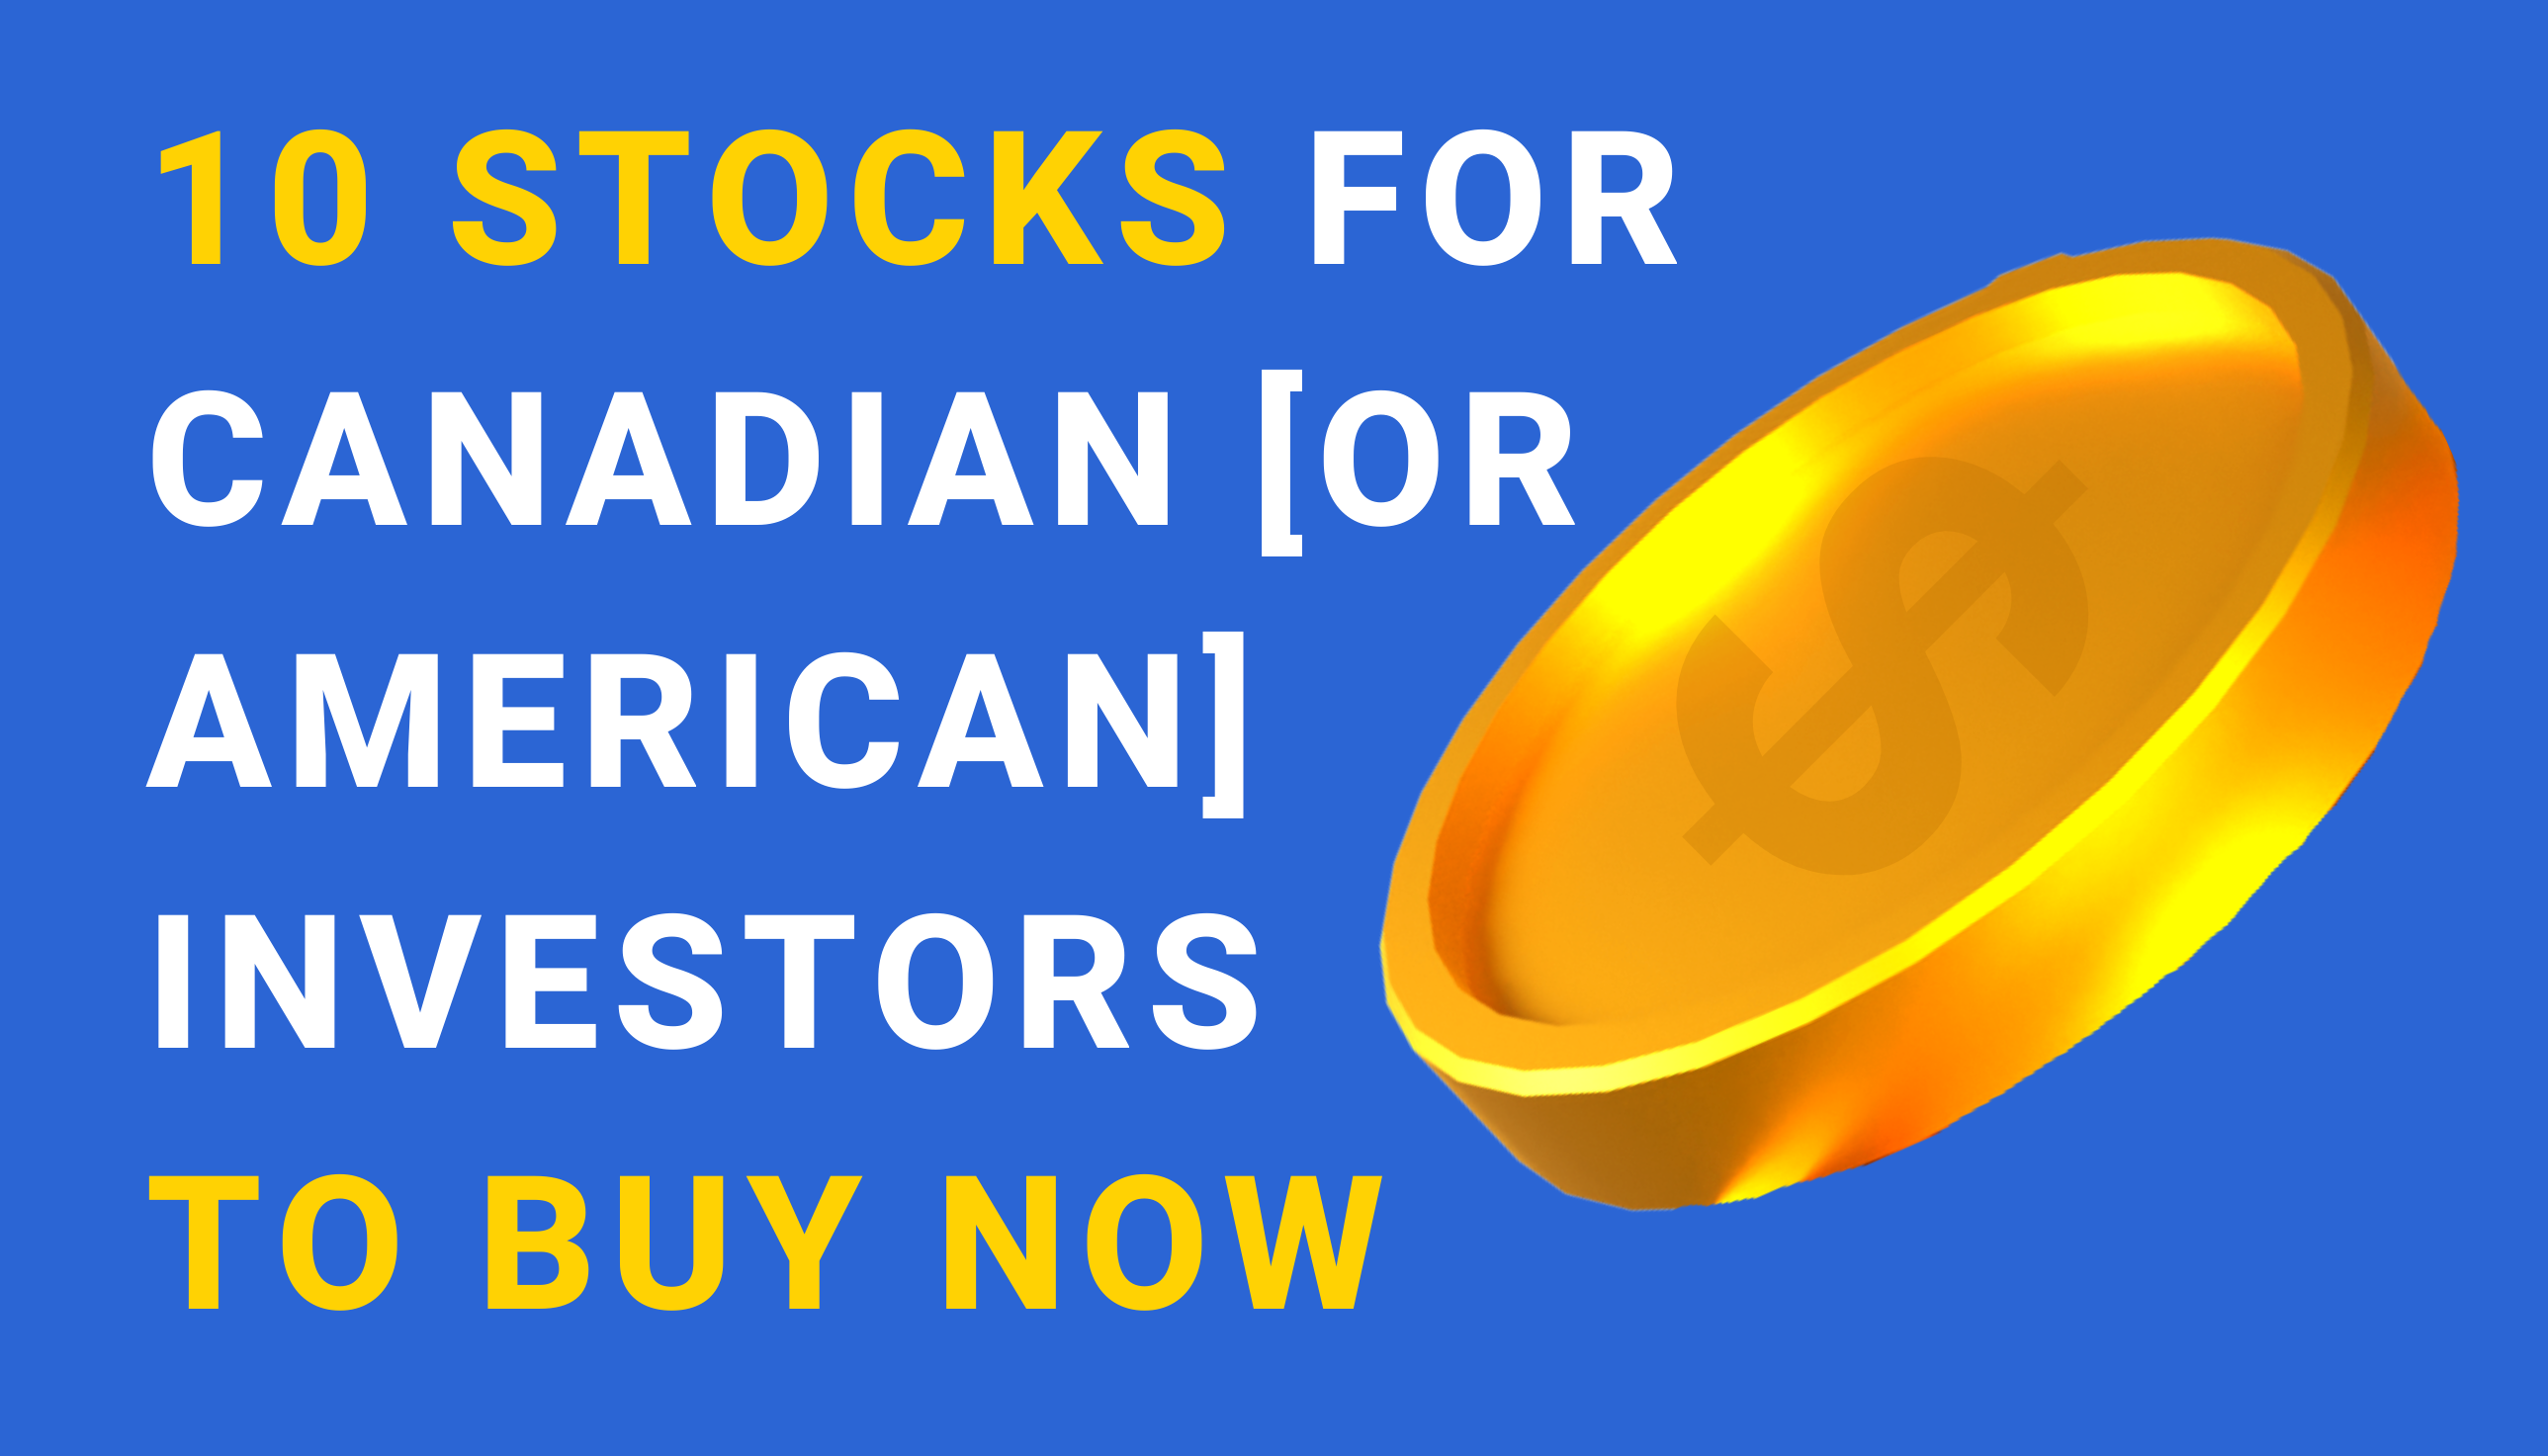 10 Stocks for Canadian or American Investors to Buy Now